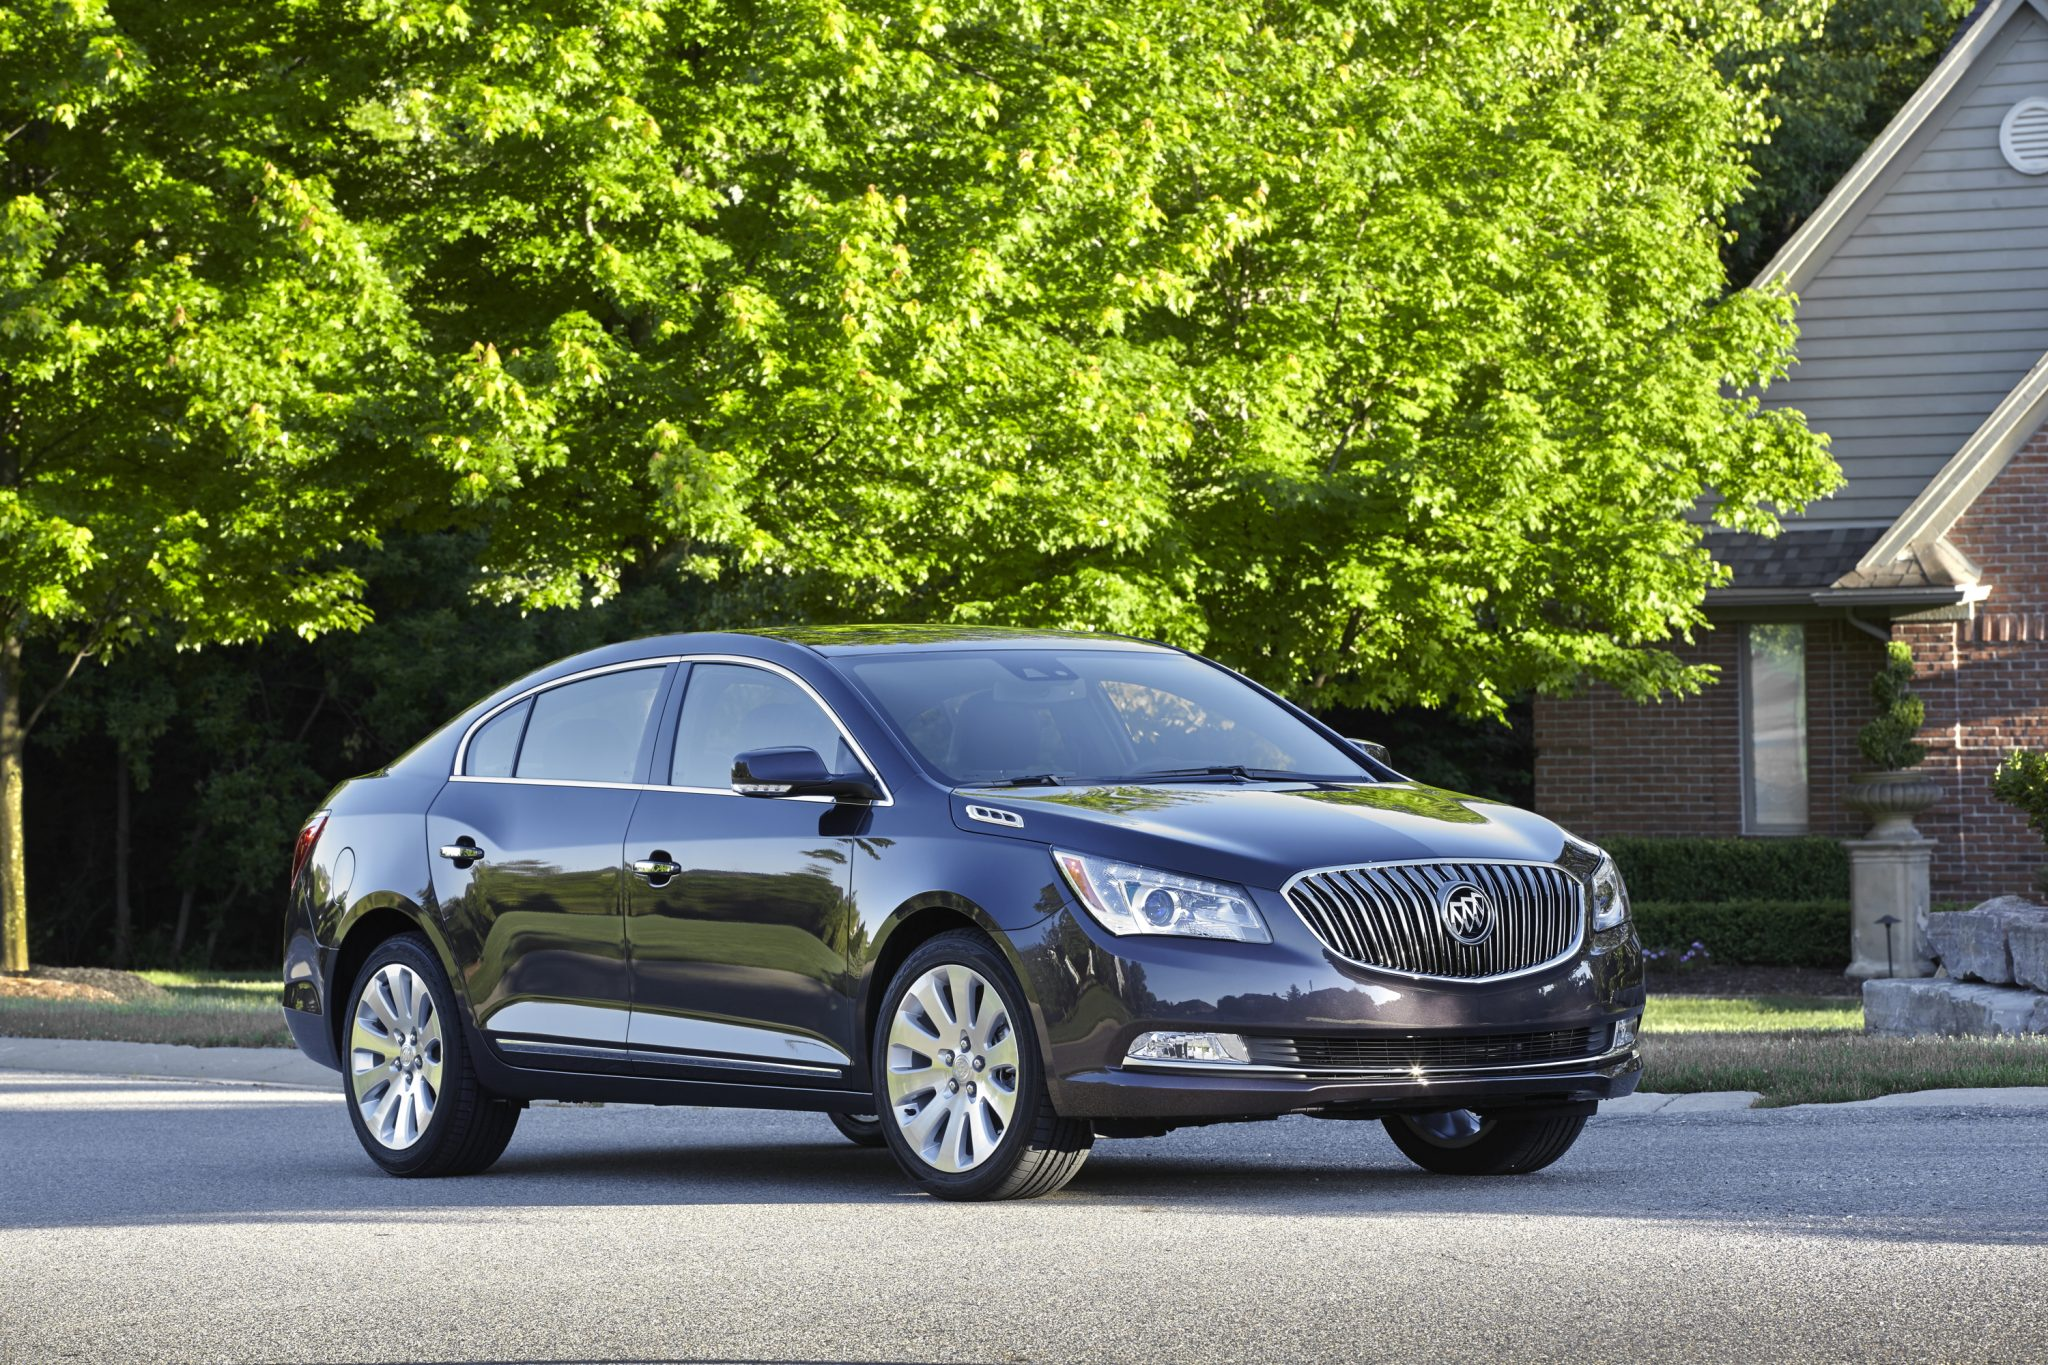 2017 Buick Lacrosse Best Car For Road Trips